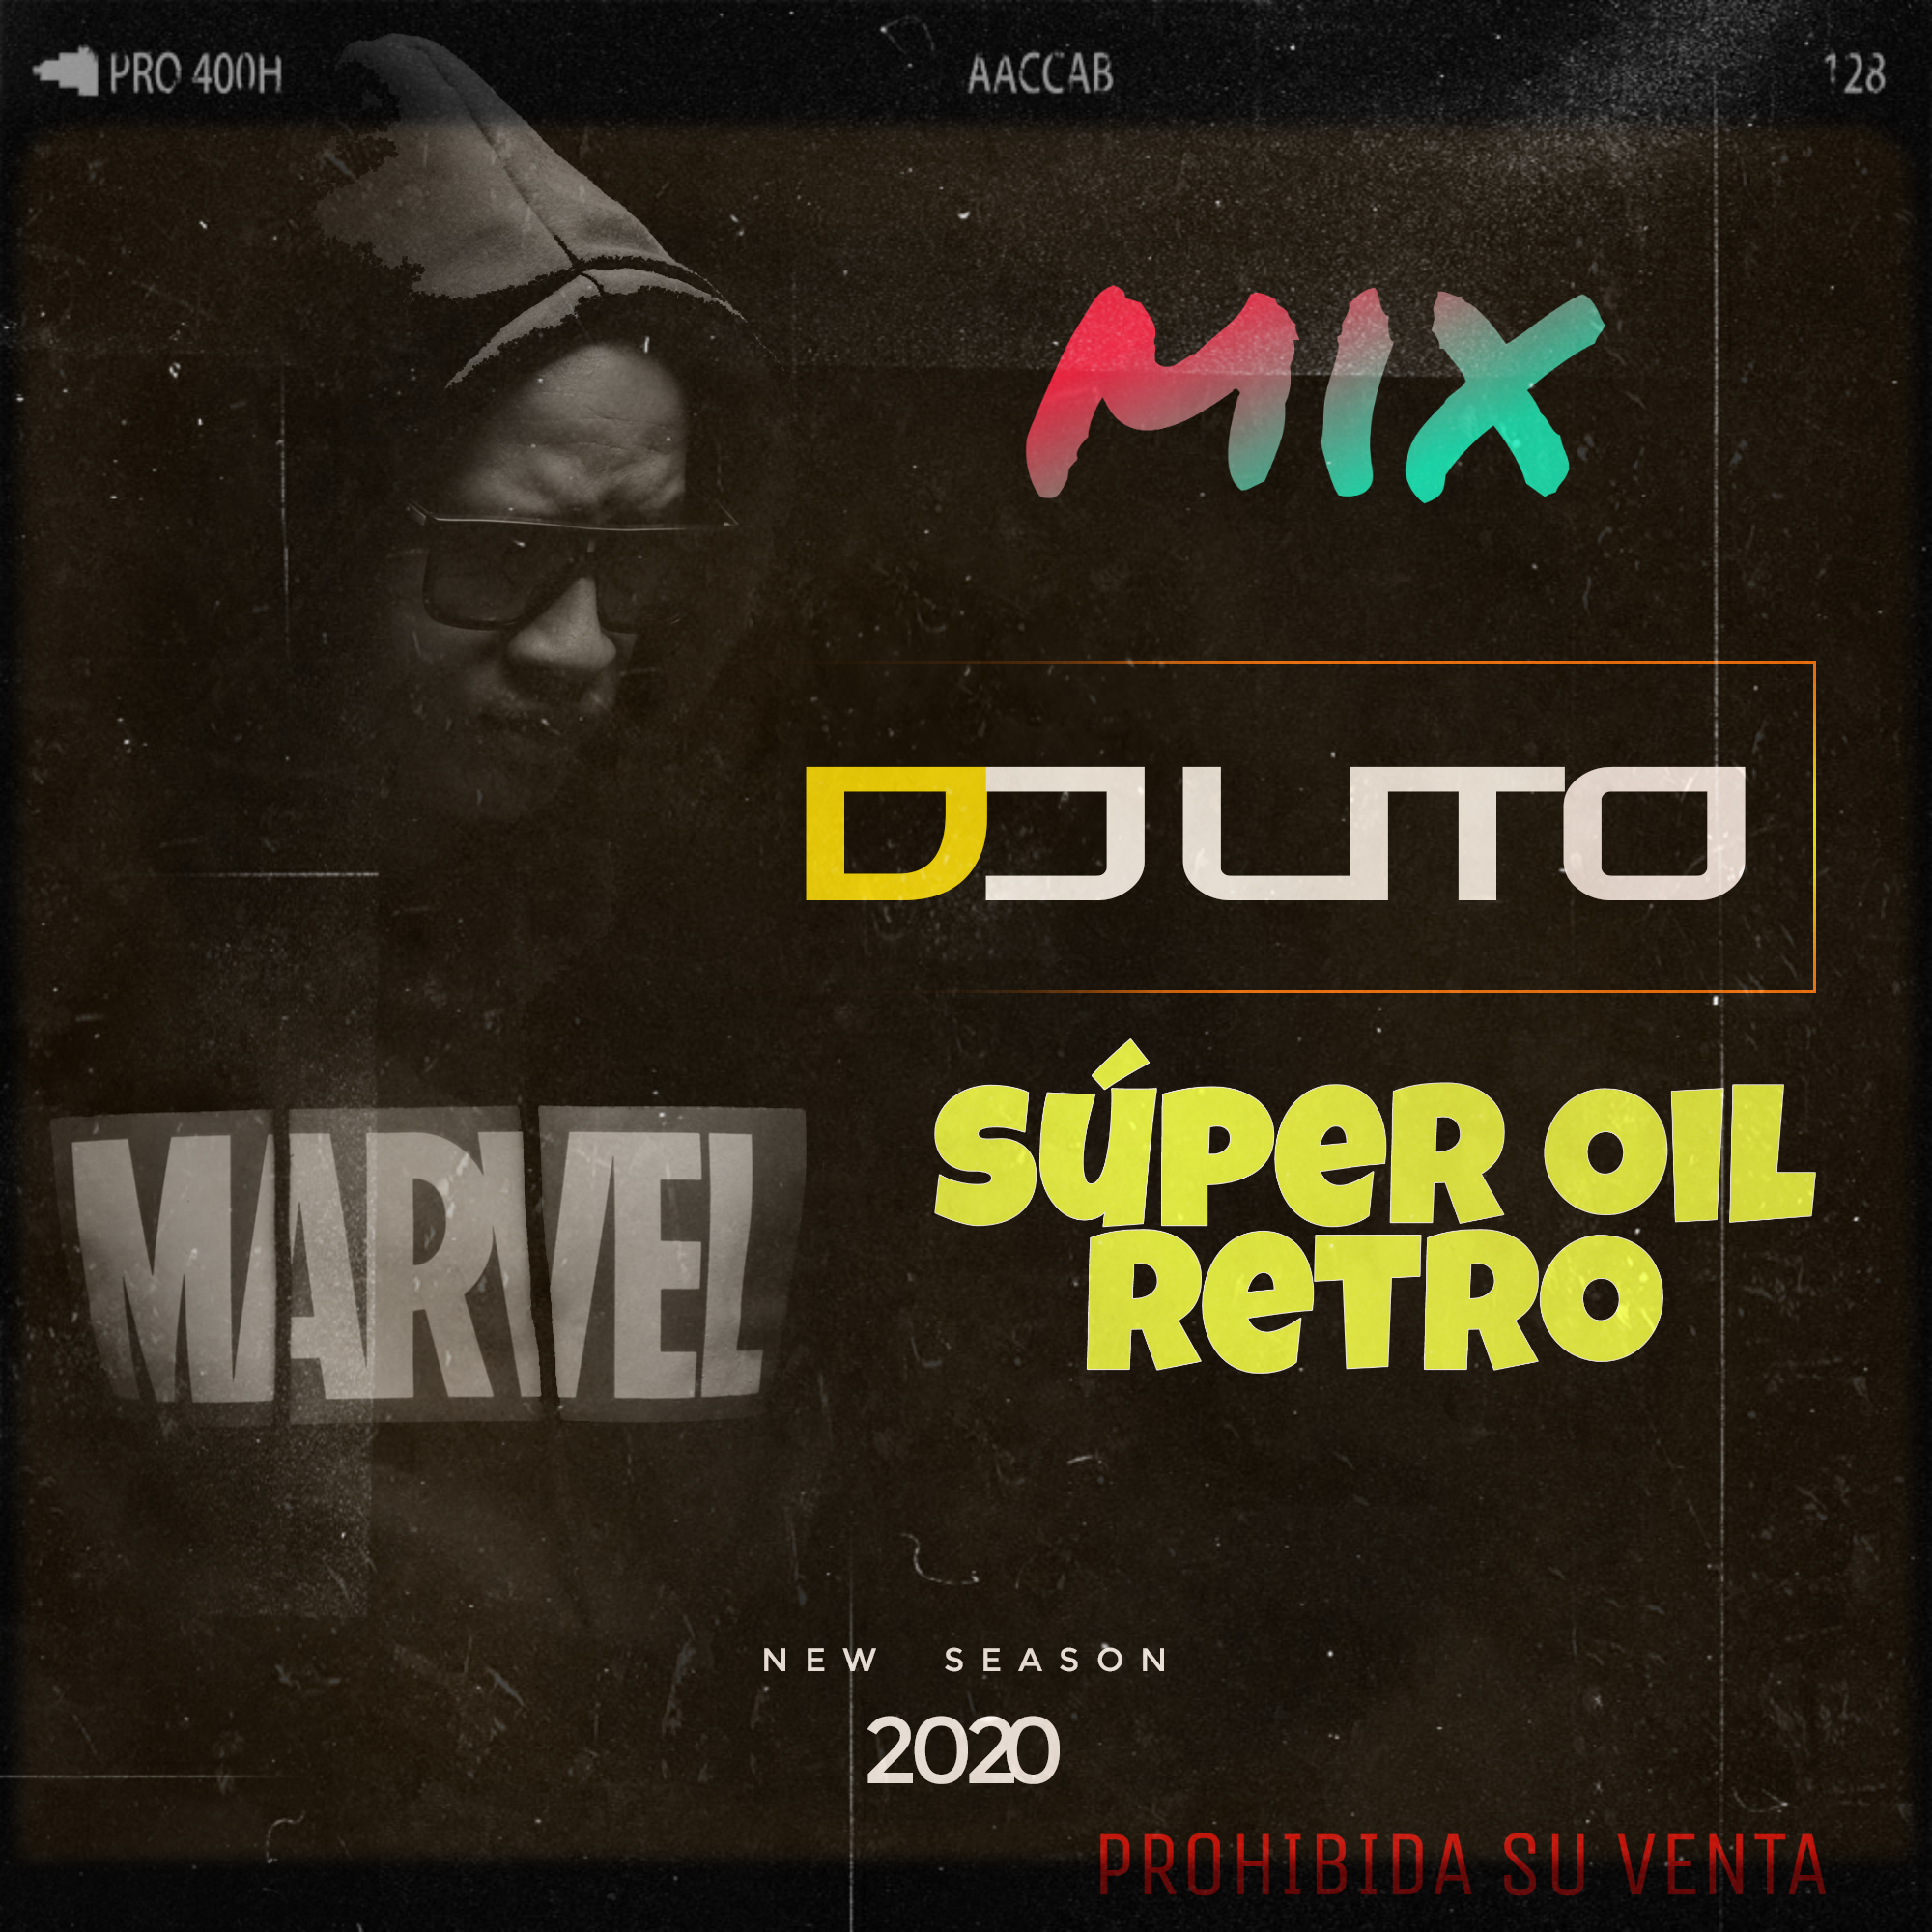 Dj Lito - Super Oil Retro